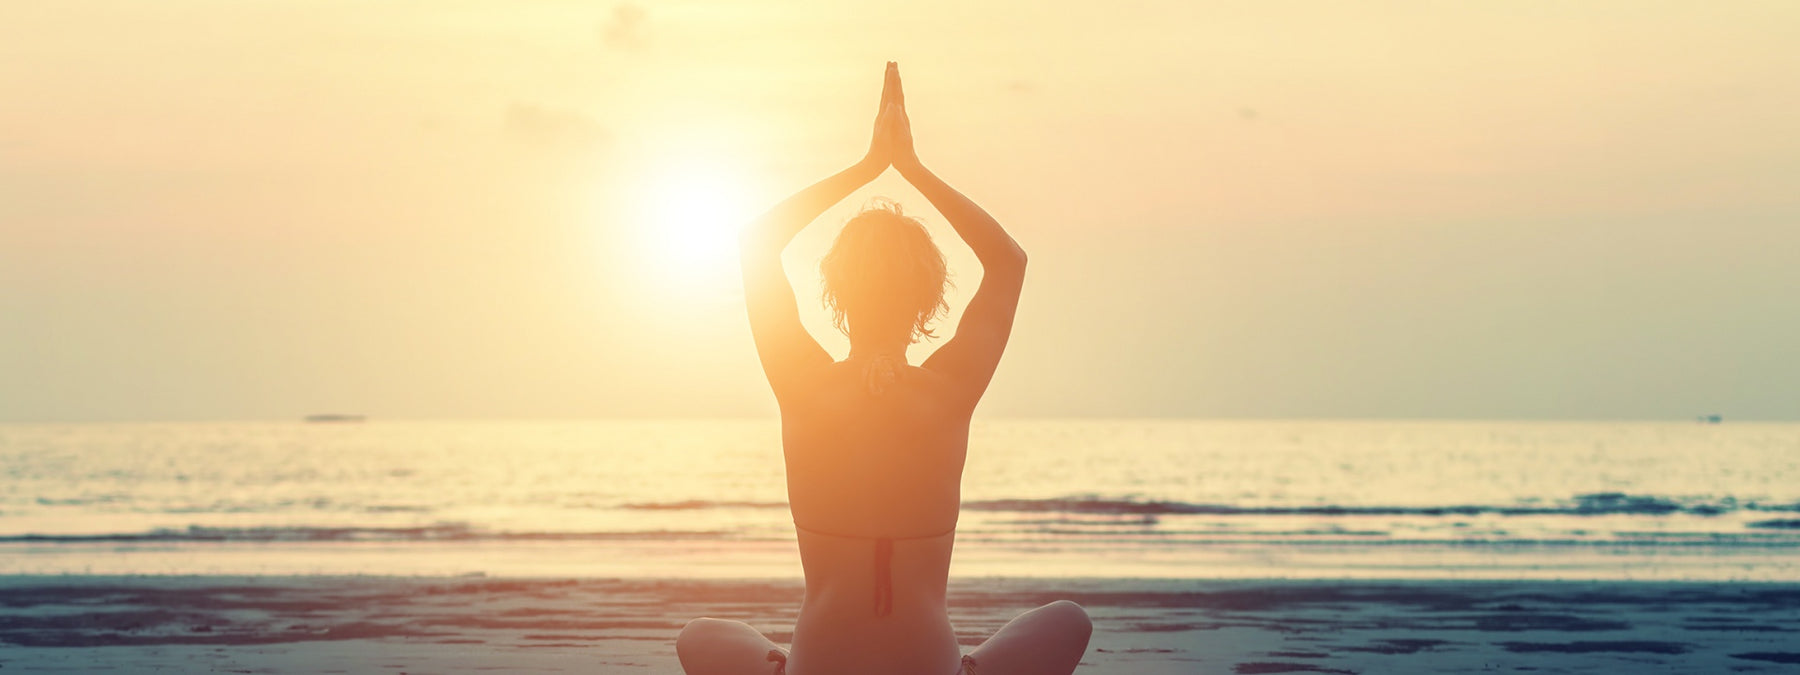 146 Yoga Quotes to Help You Stay Centered